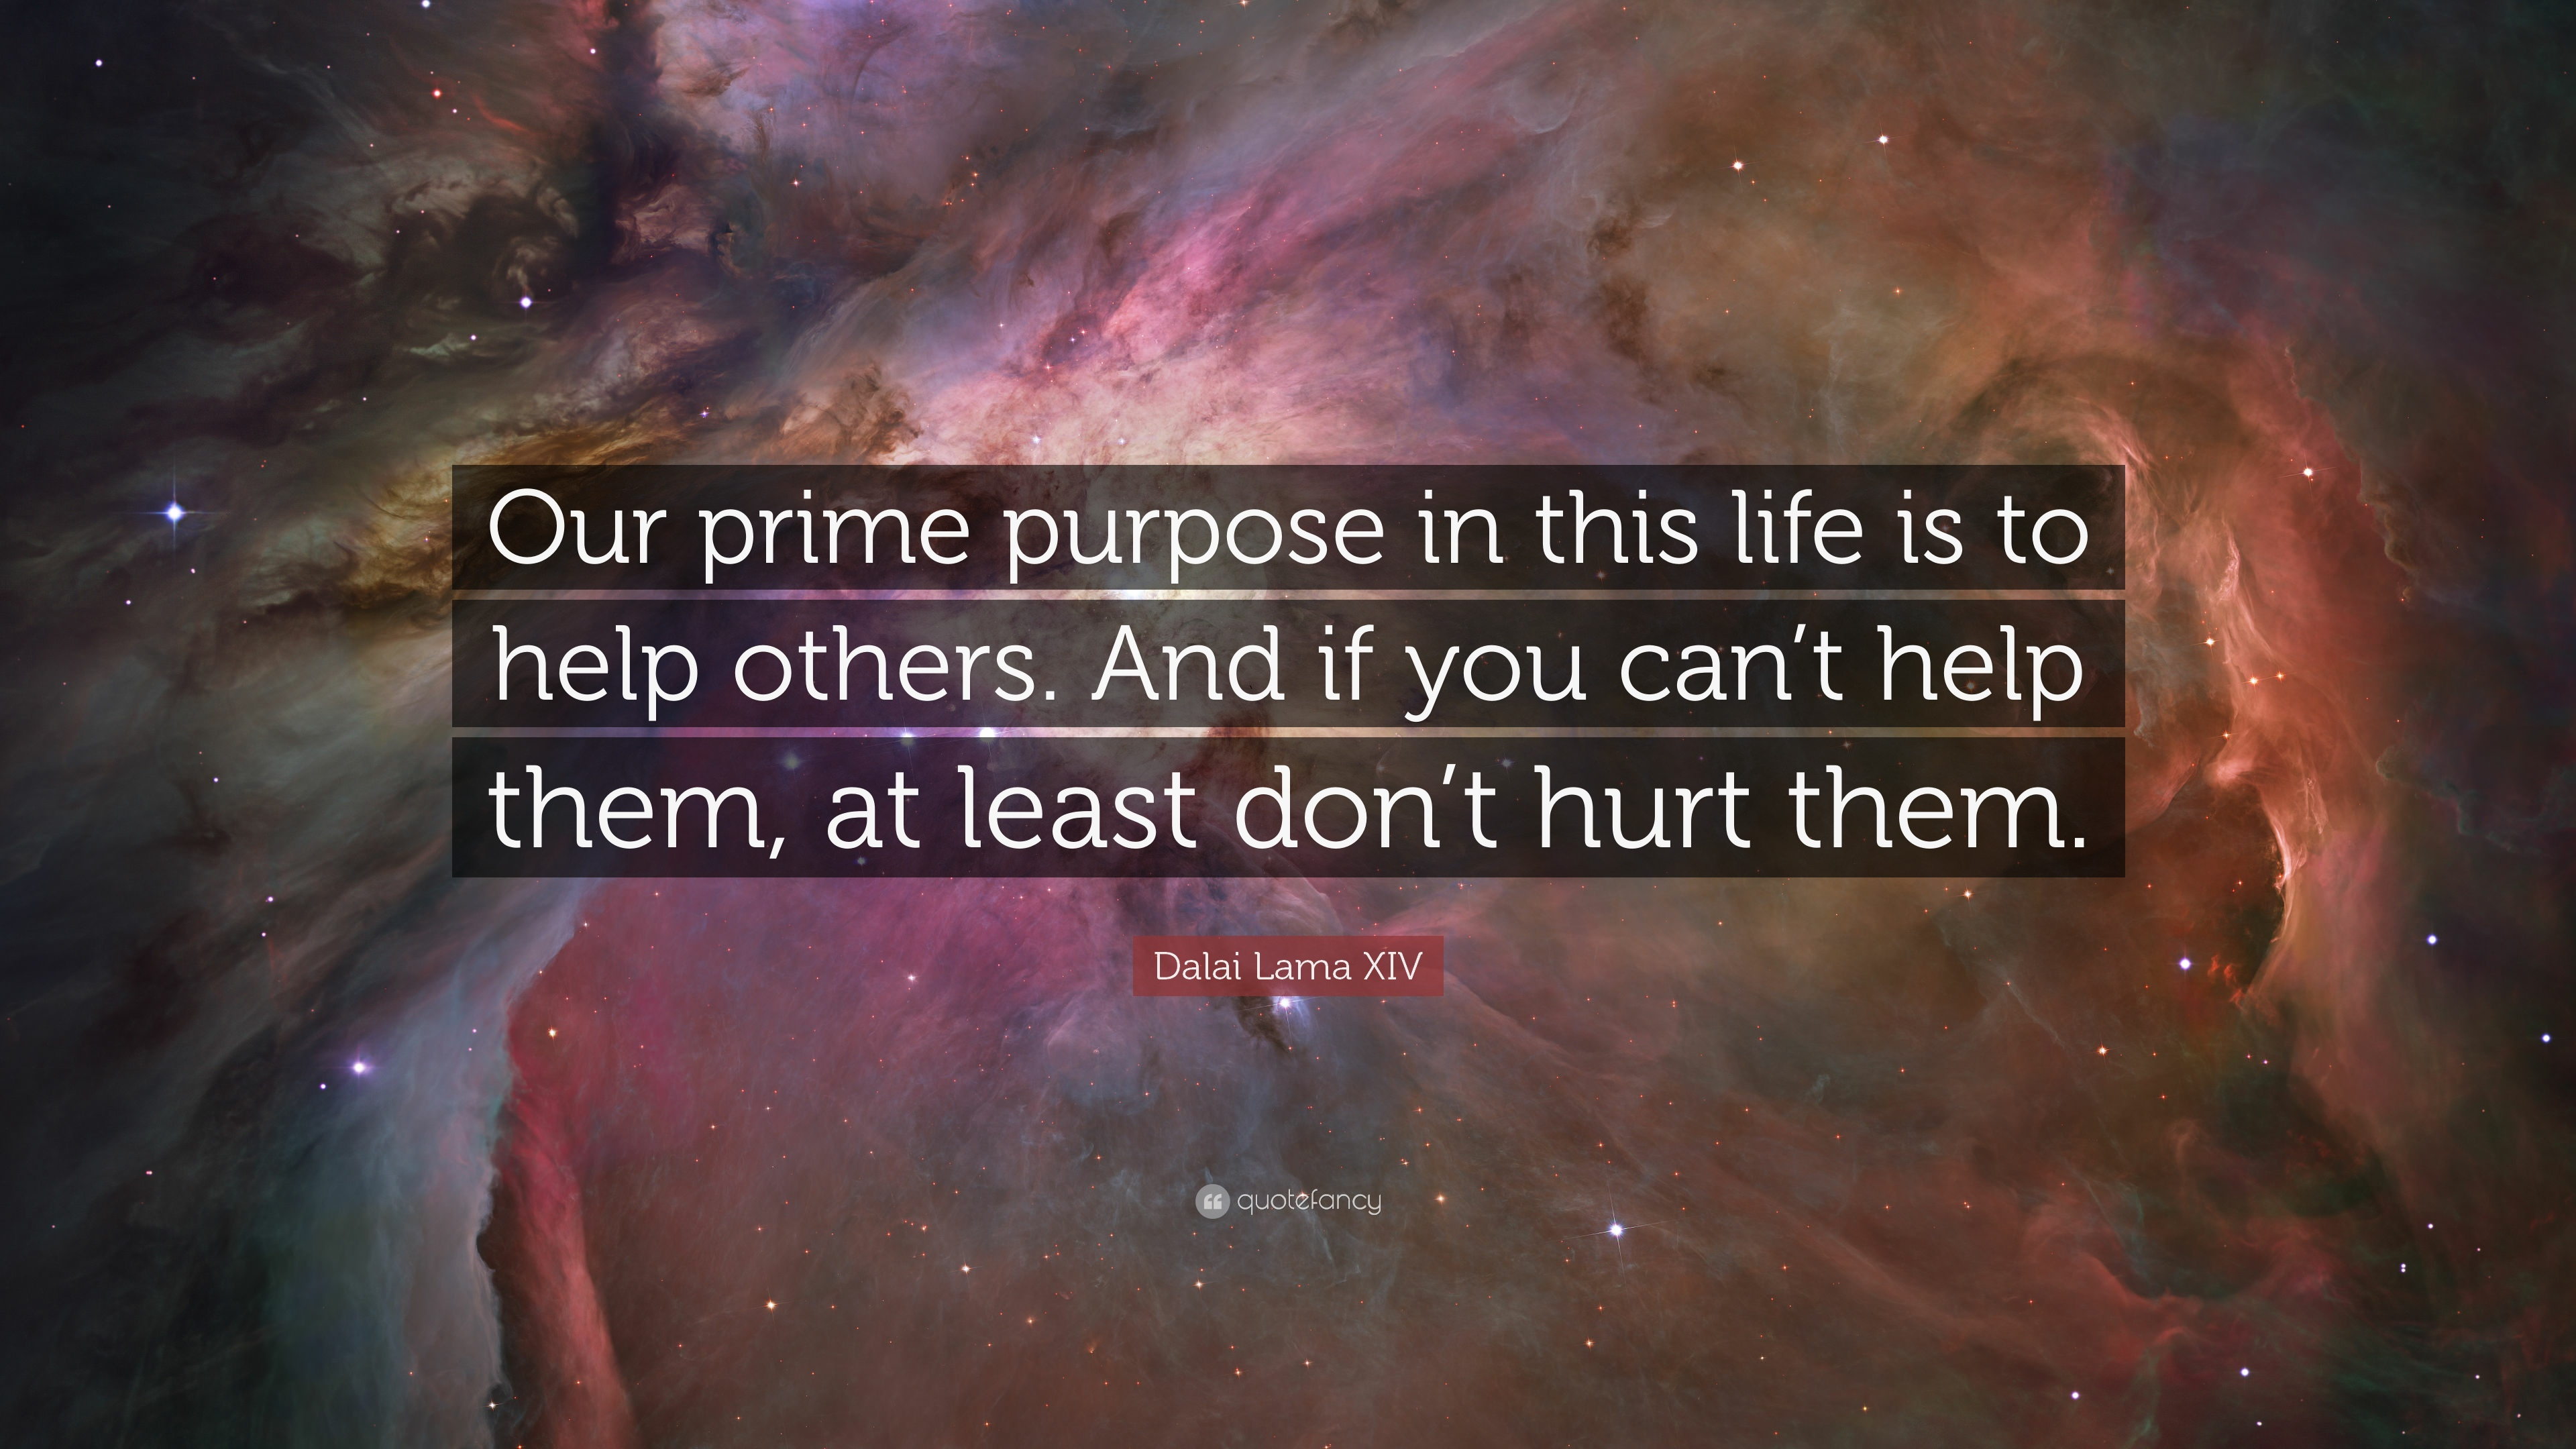 Help Others The Purpose Of Life Quotes On Helping Others Help Others The  Purpose Of Life